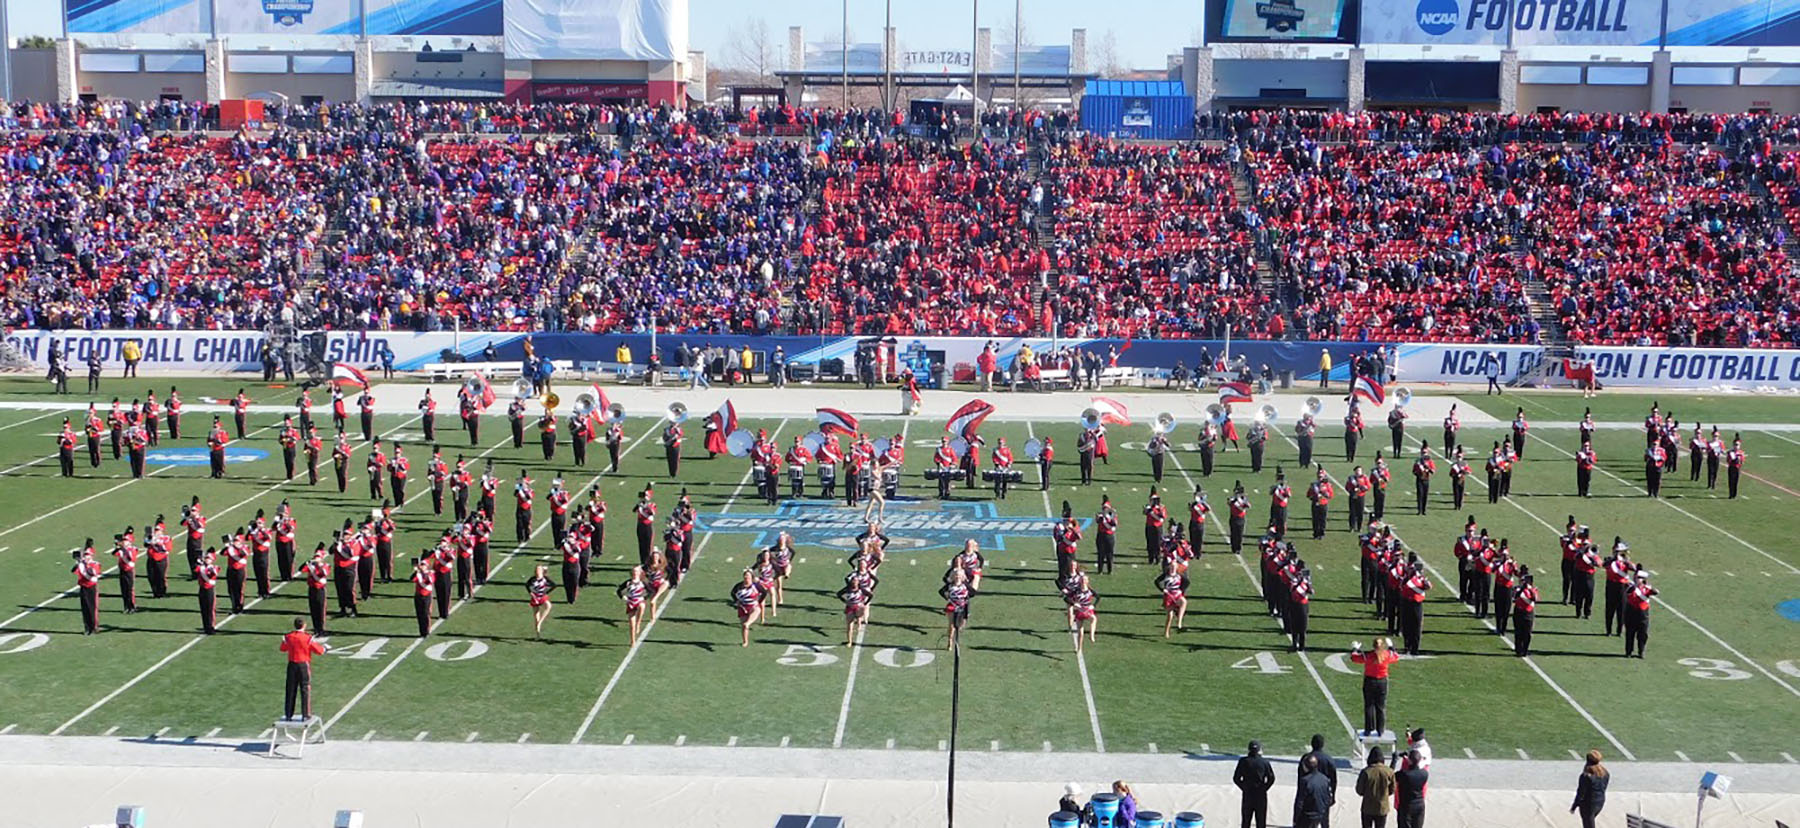 The Marching Pride performing at the National Championship